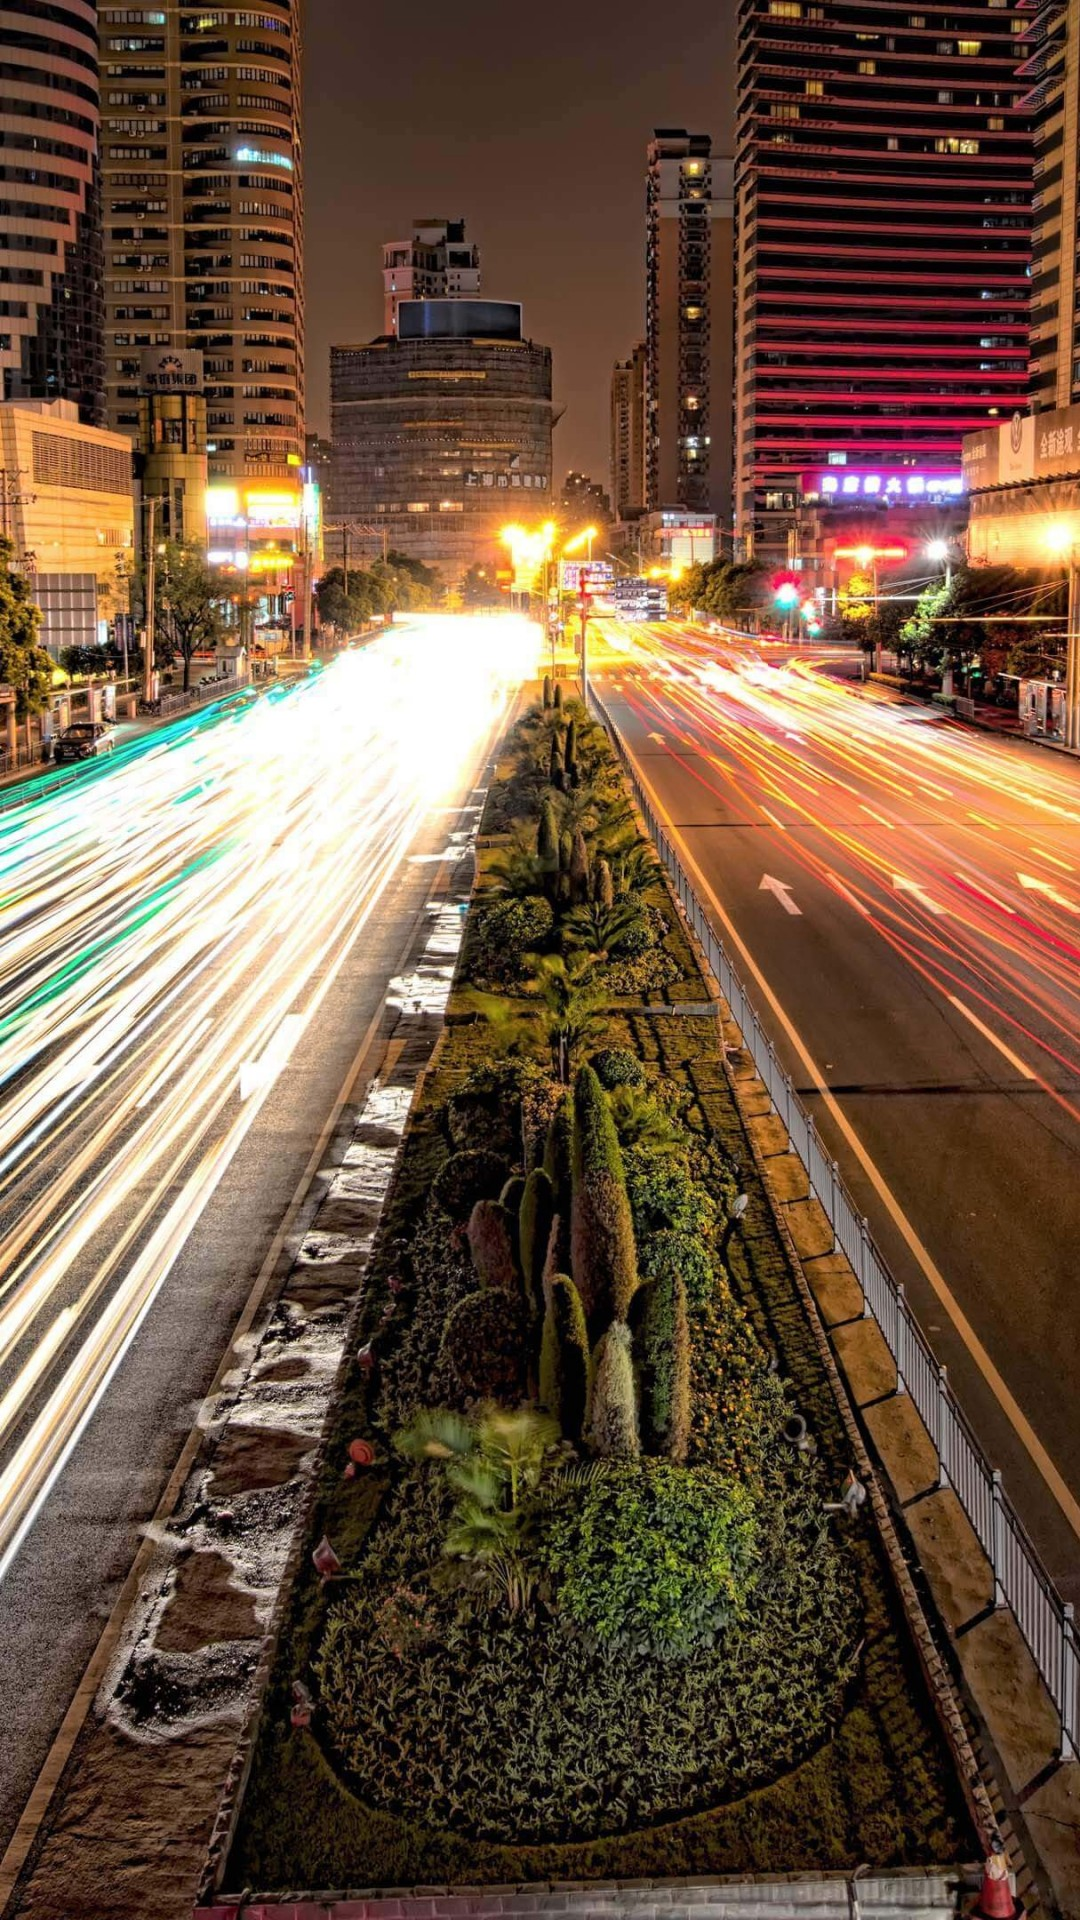 Busy Road in Shanghai at Night Wallpaper for SAMSUNG Galaxy Note 3